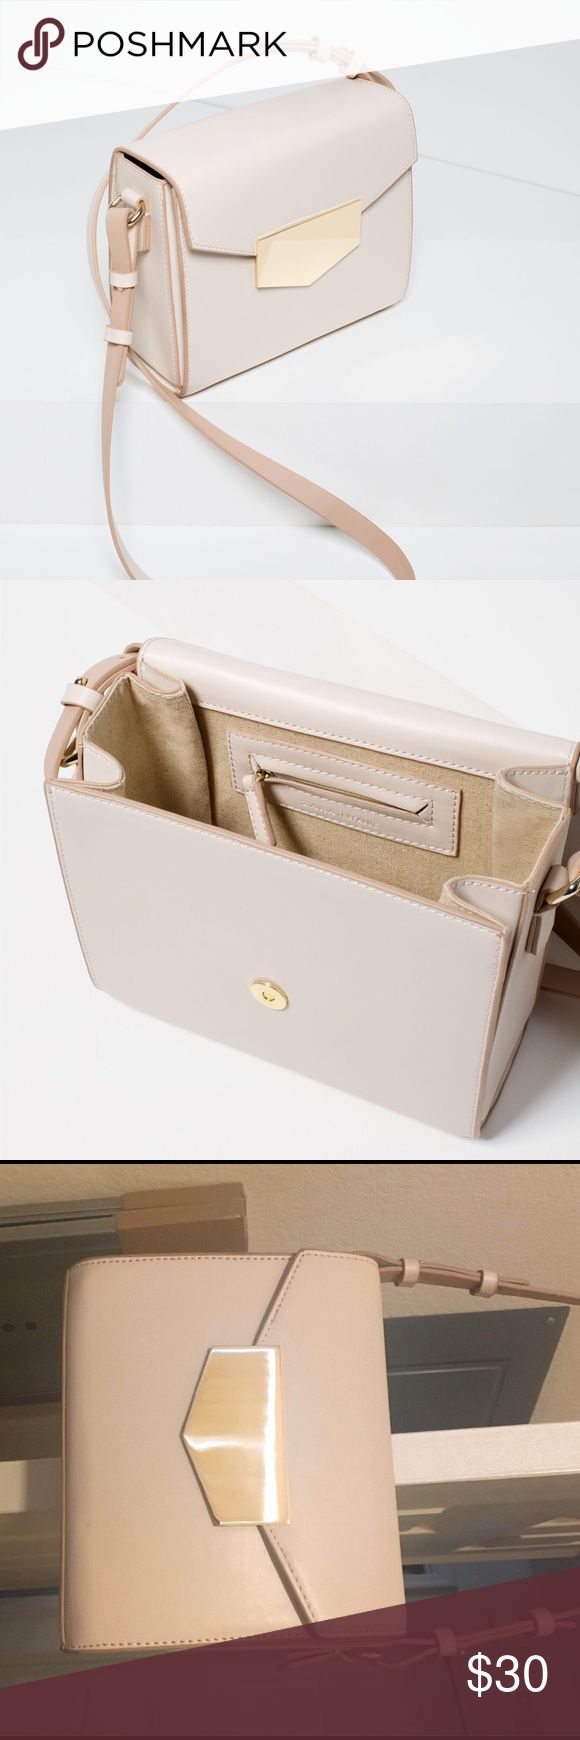 Zara Crossbody Bag with Metallic Closure Ecru Medium sized Crossbody Bag. This bag has only been used a couple times and is in excellent condition! Off white color. According to Zara, the color of the bag is Ecru. Zara Bags Crossbody Bags